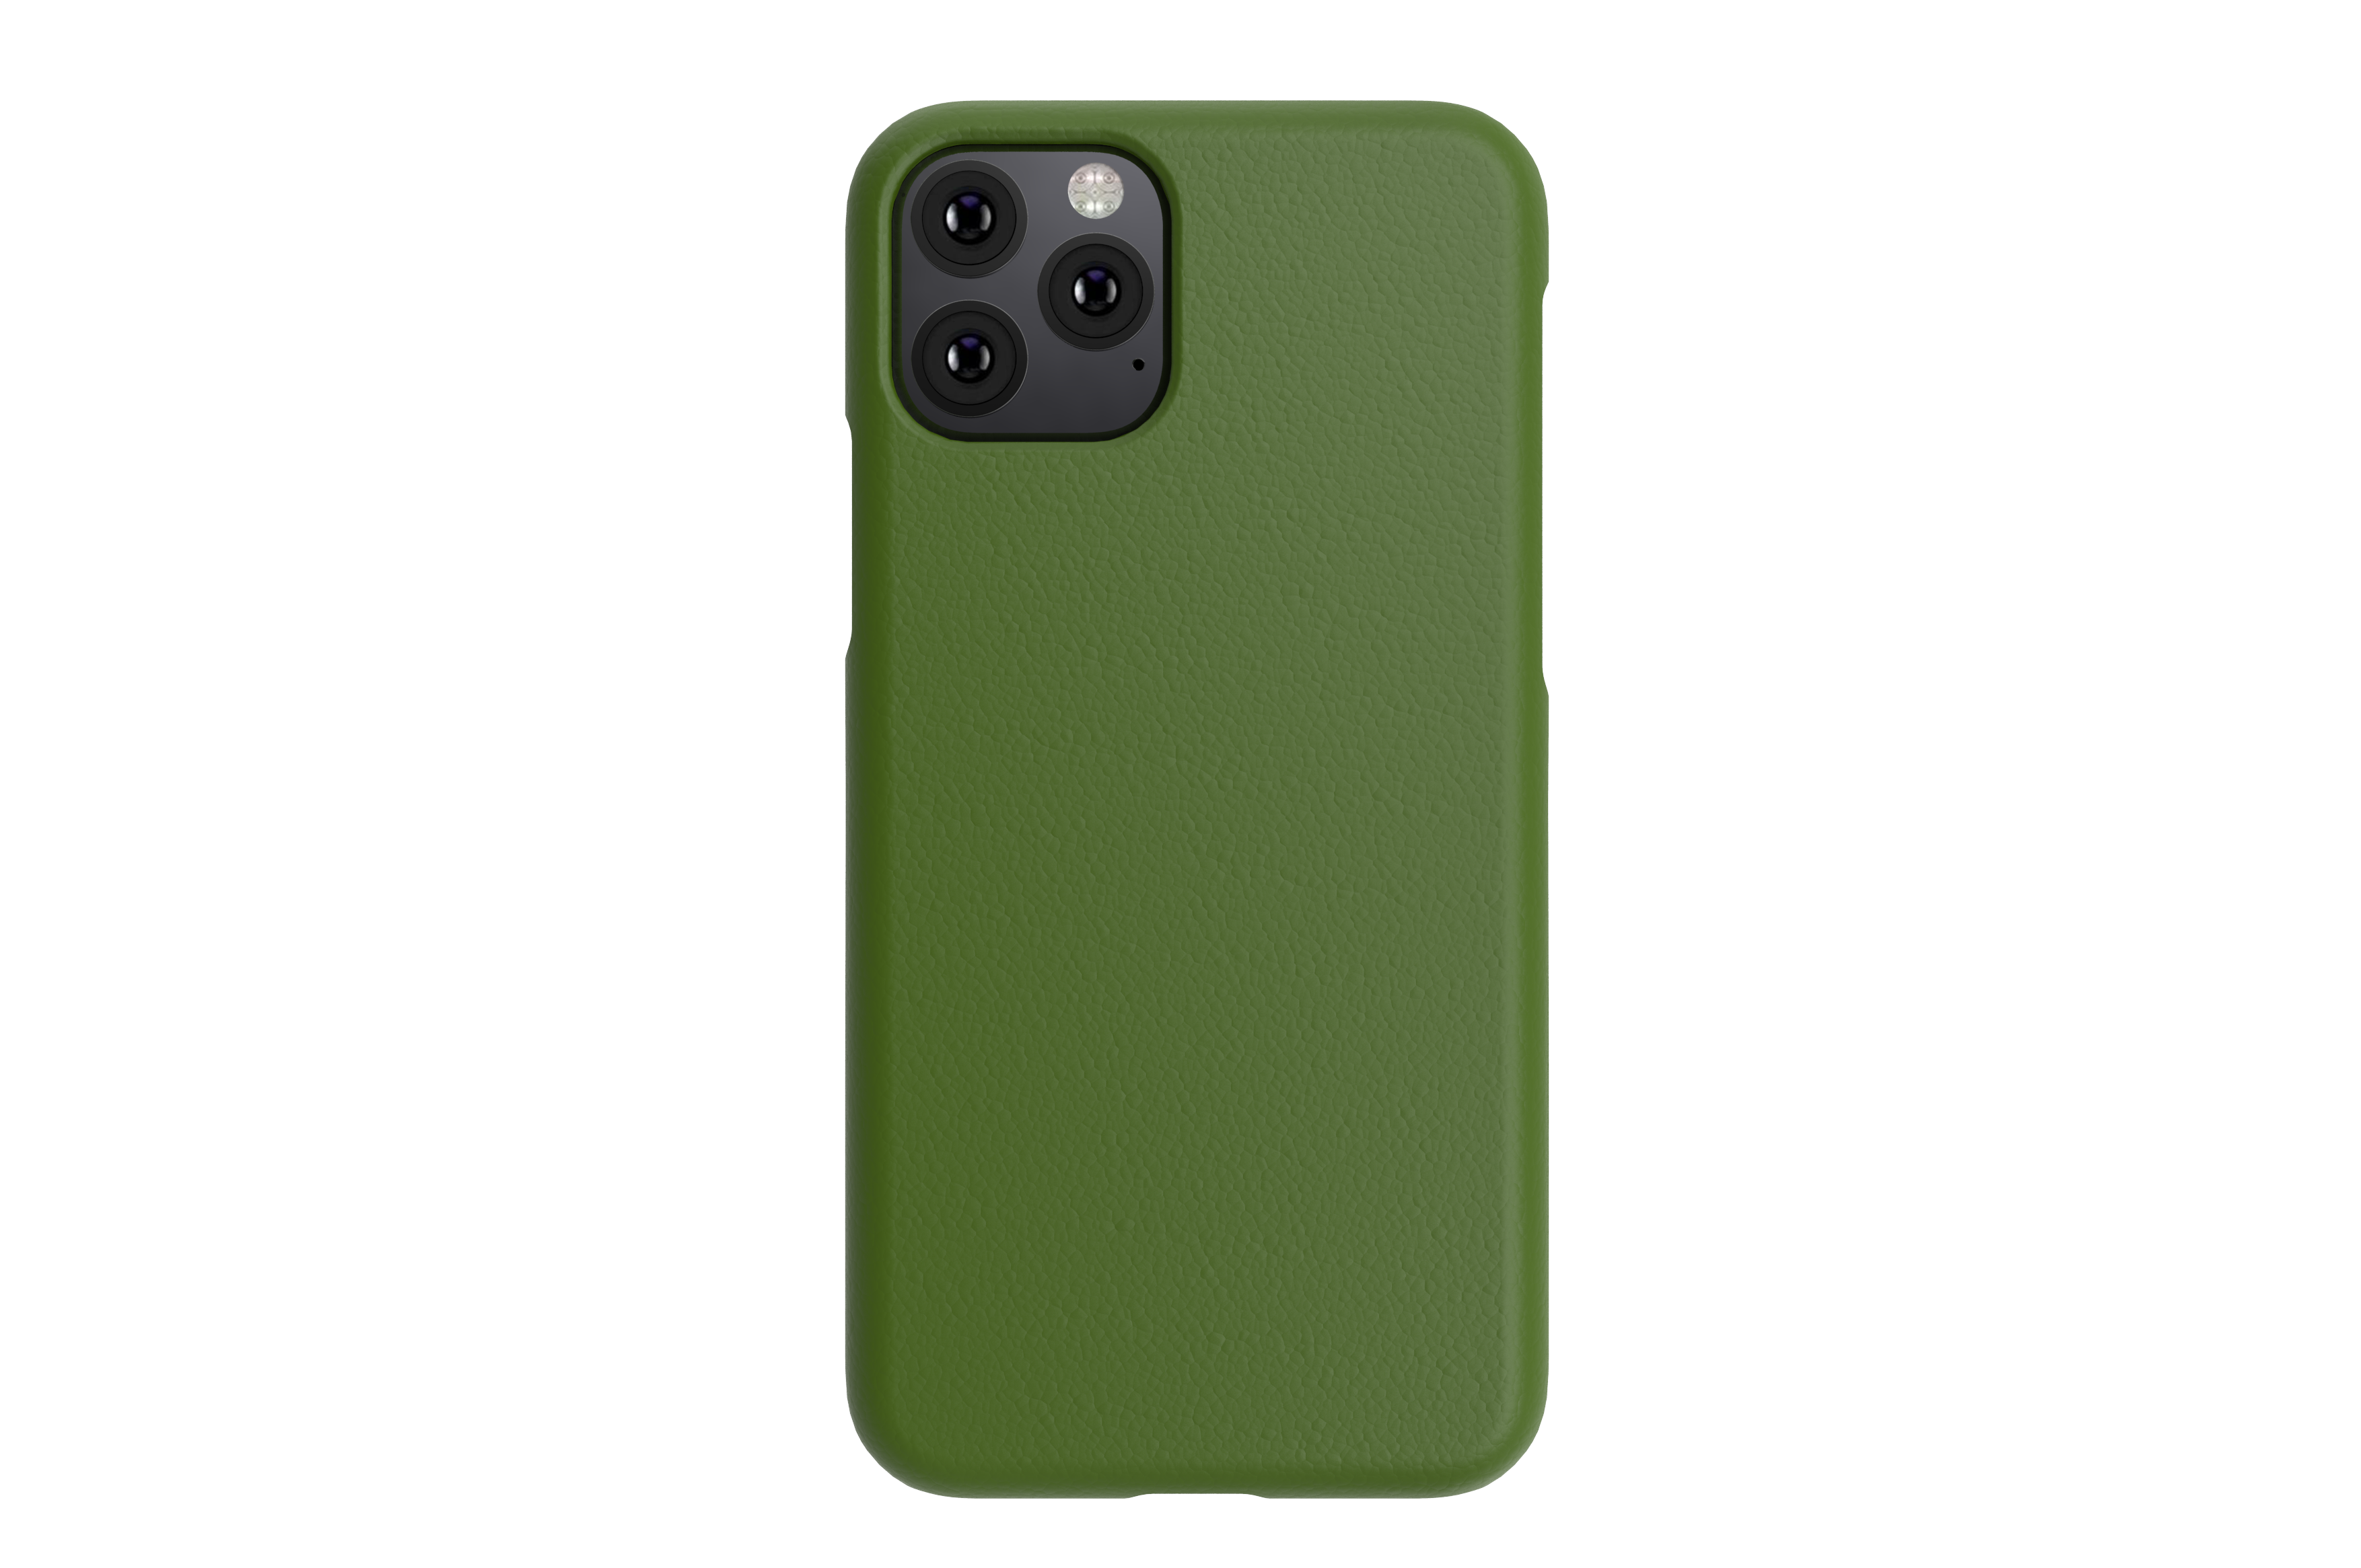 iphone11 pro green-1